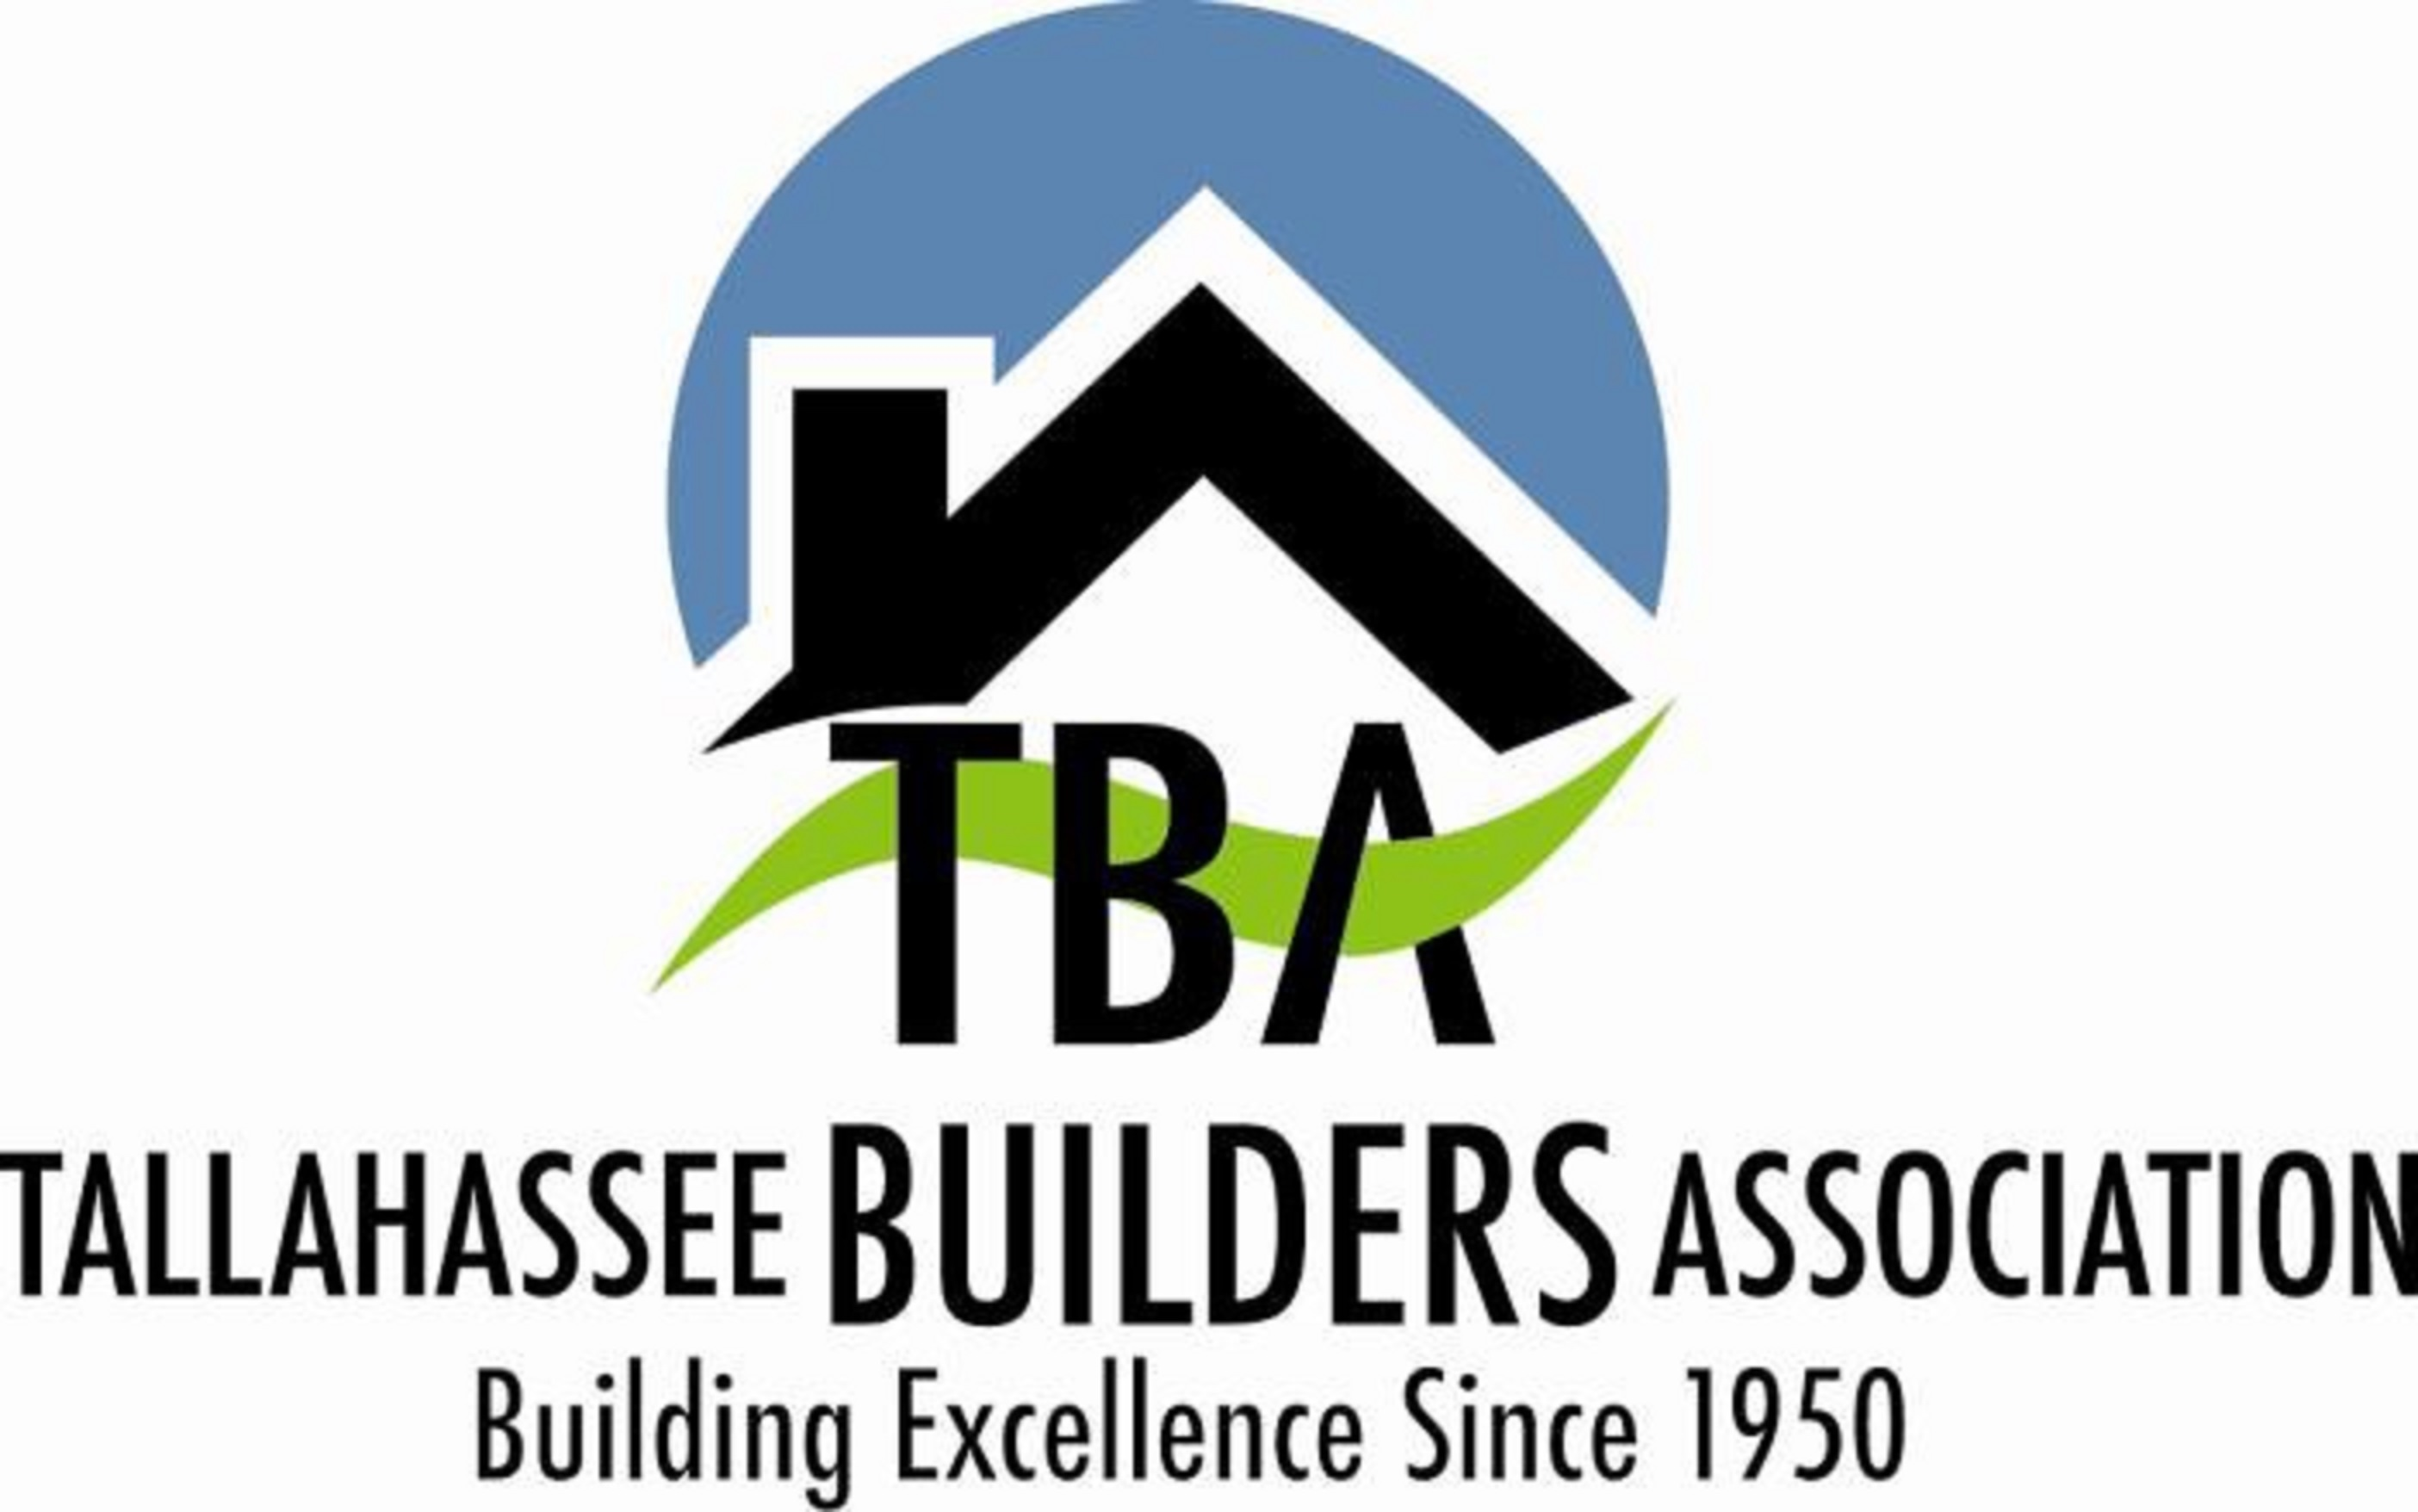 Tallahassee Builders Association Member